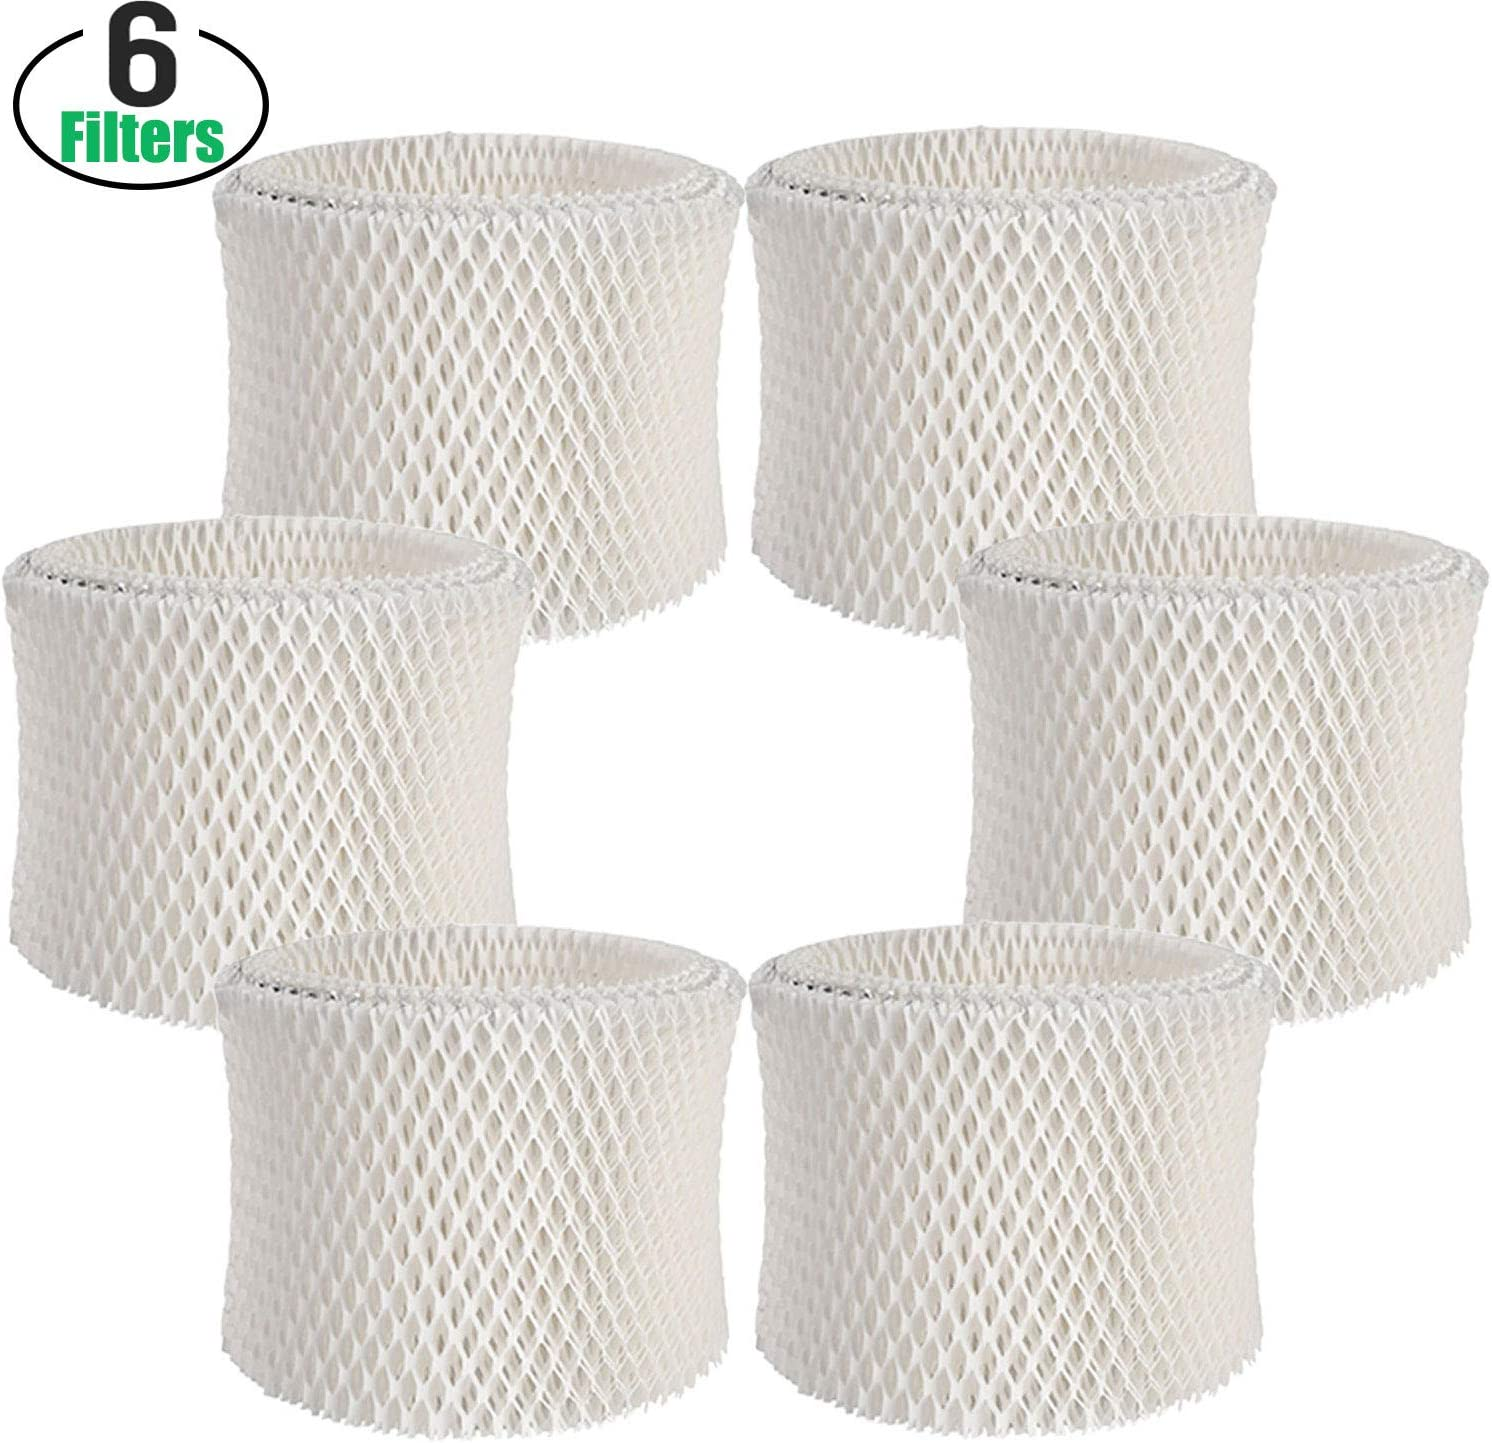 Lxiyu 6 Pack Premium Humidifier Wicking Filters Replacement, Compatible with Honeywell Filters A HAC-504, HAC-504AW, HCM 350,HCM-300T,HCM-631 and Other Cool Mist Humidifiers